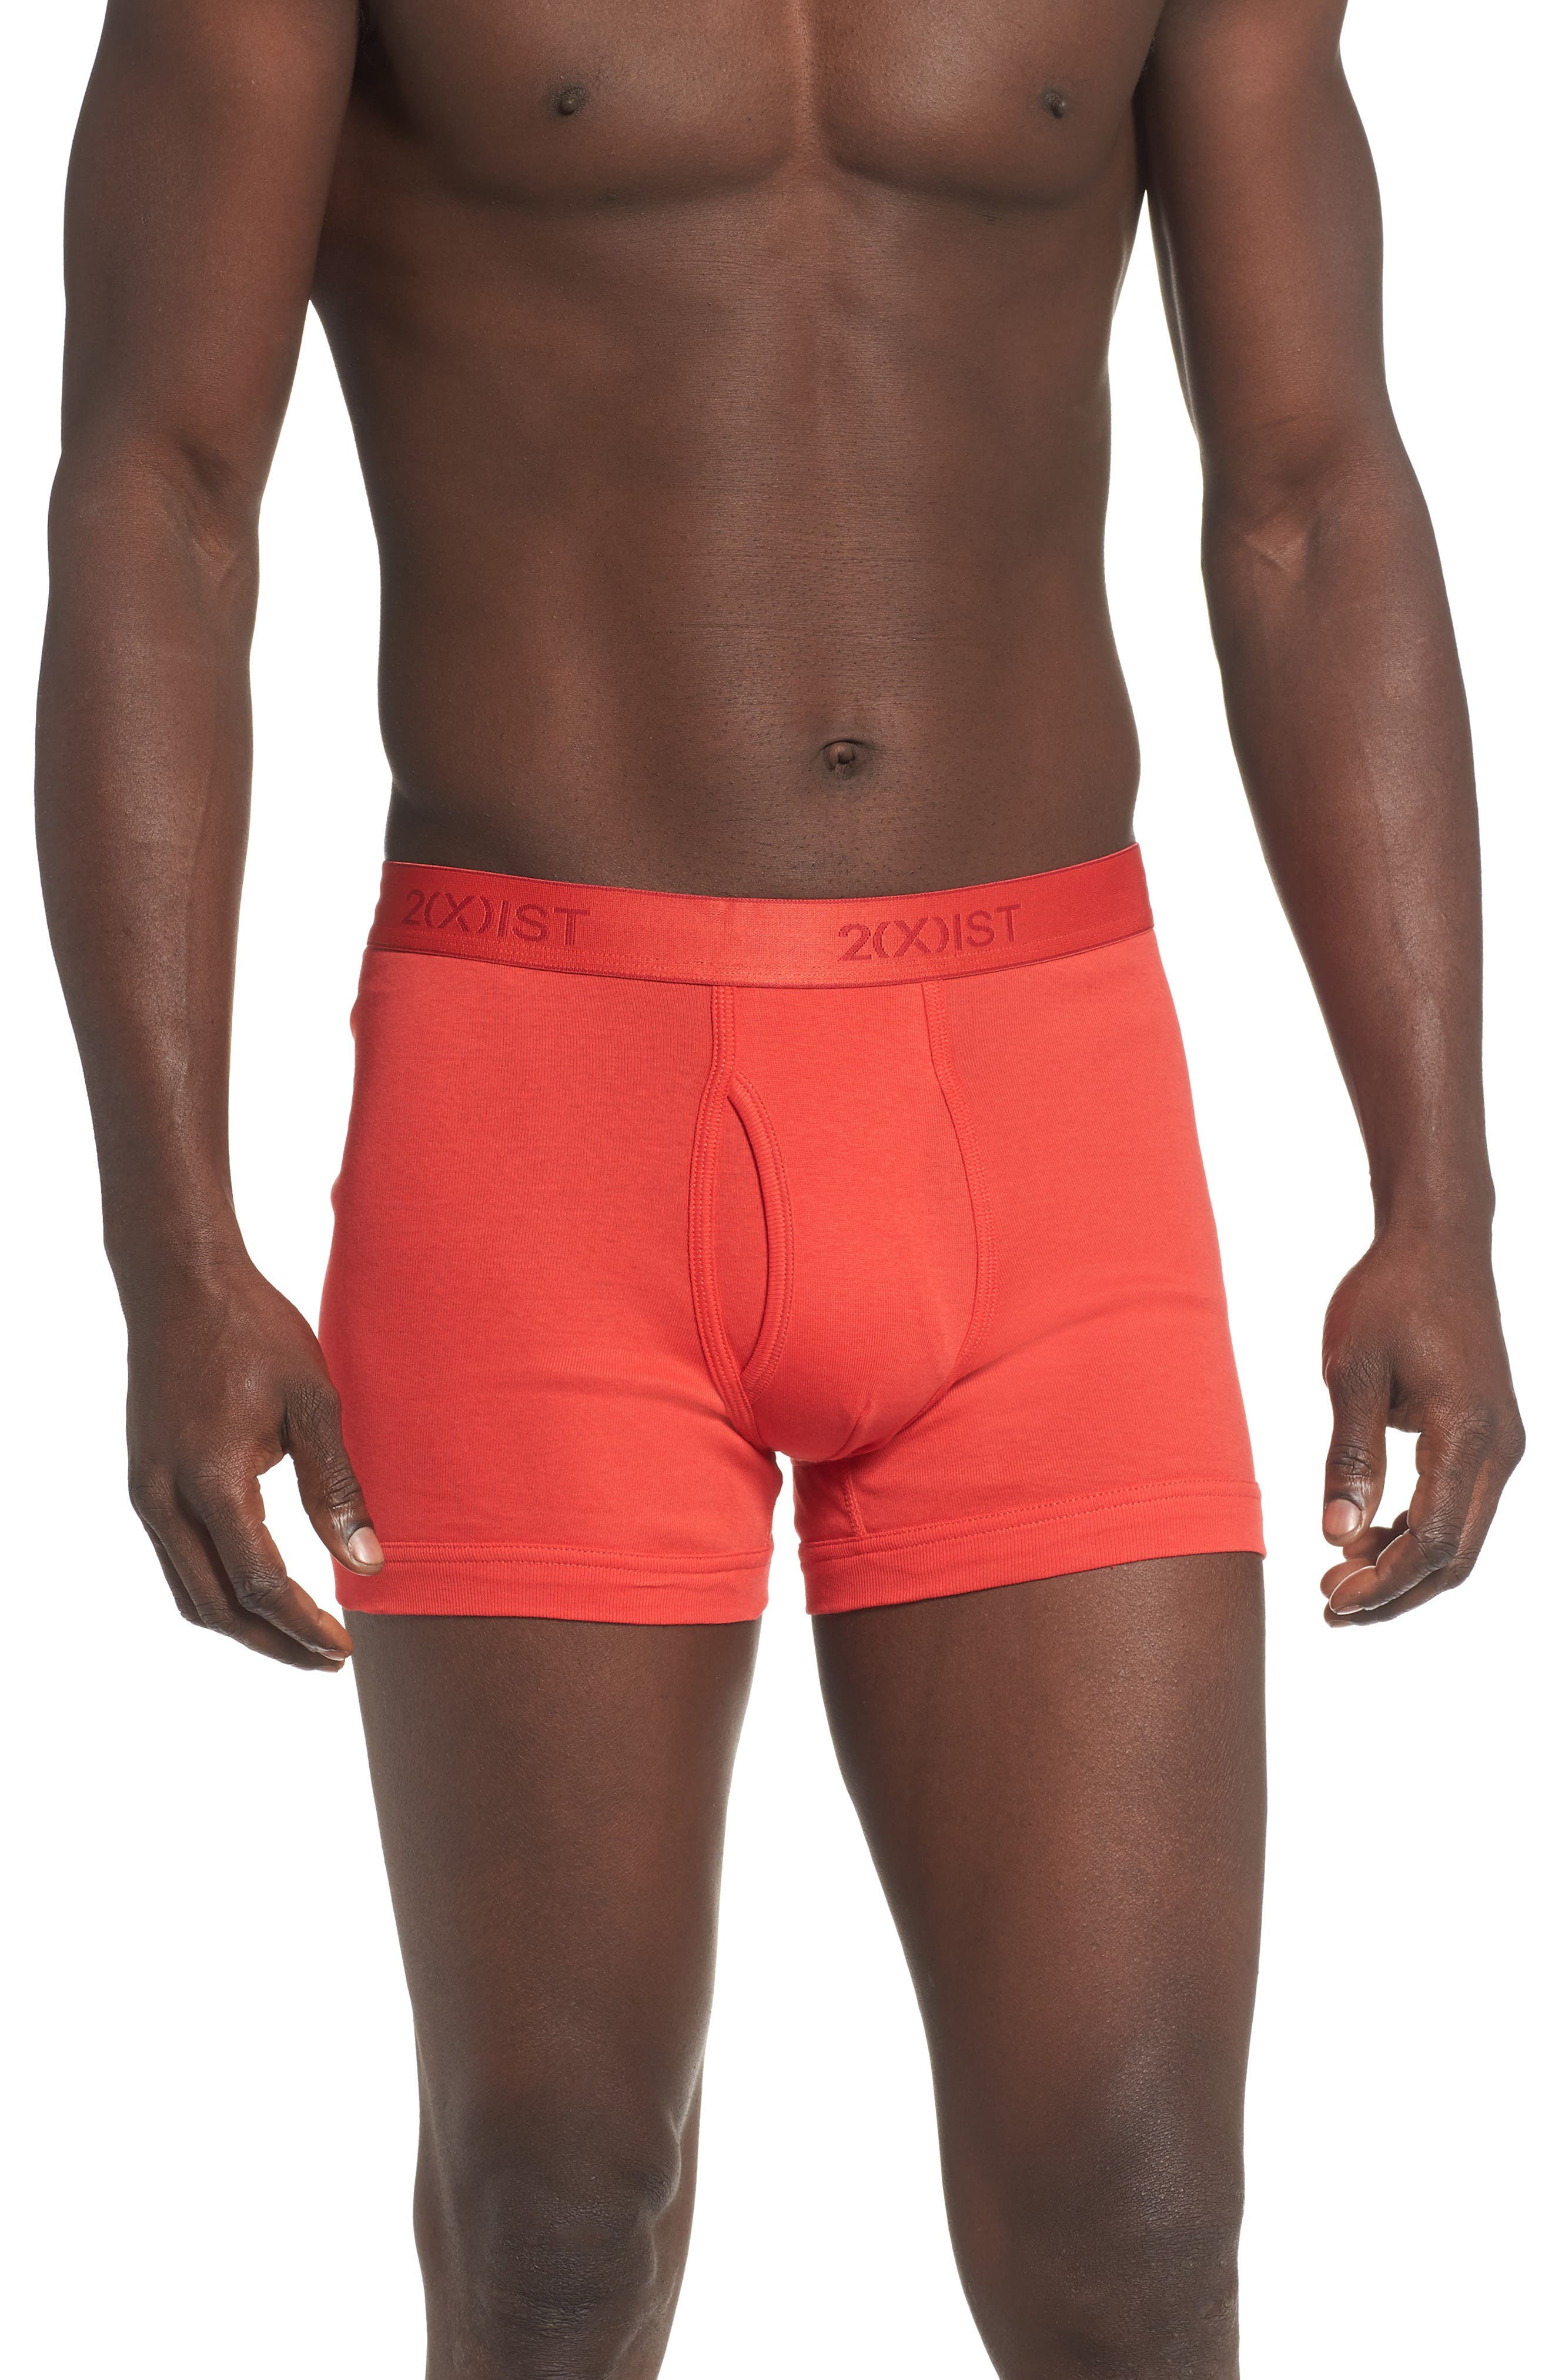 Image of 2(X)IST 3-Pack Cotton Boxer Briefs